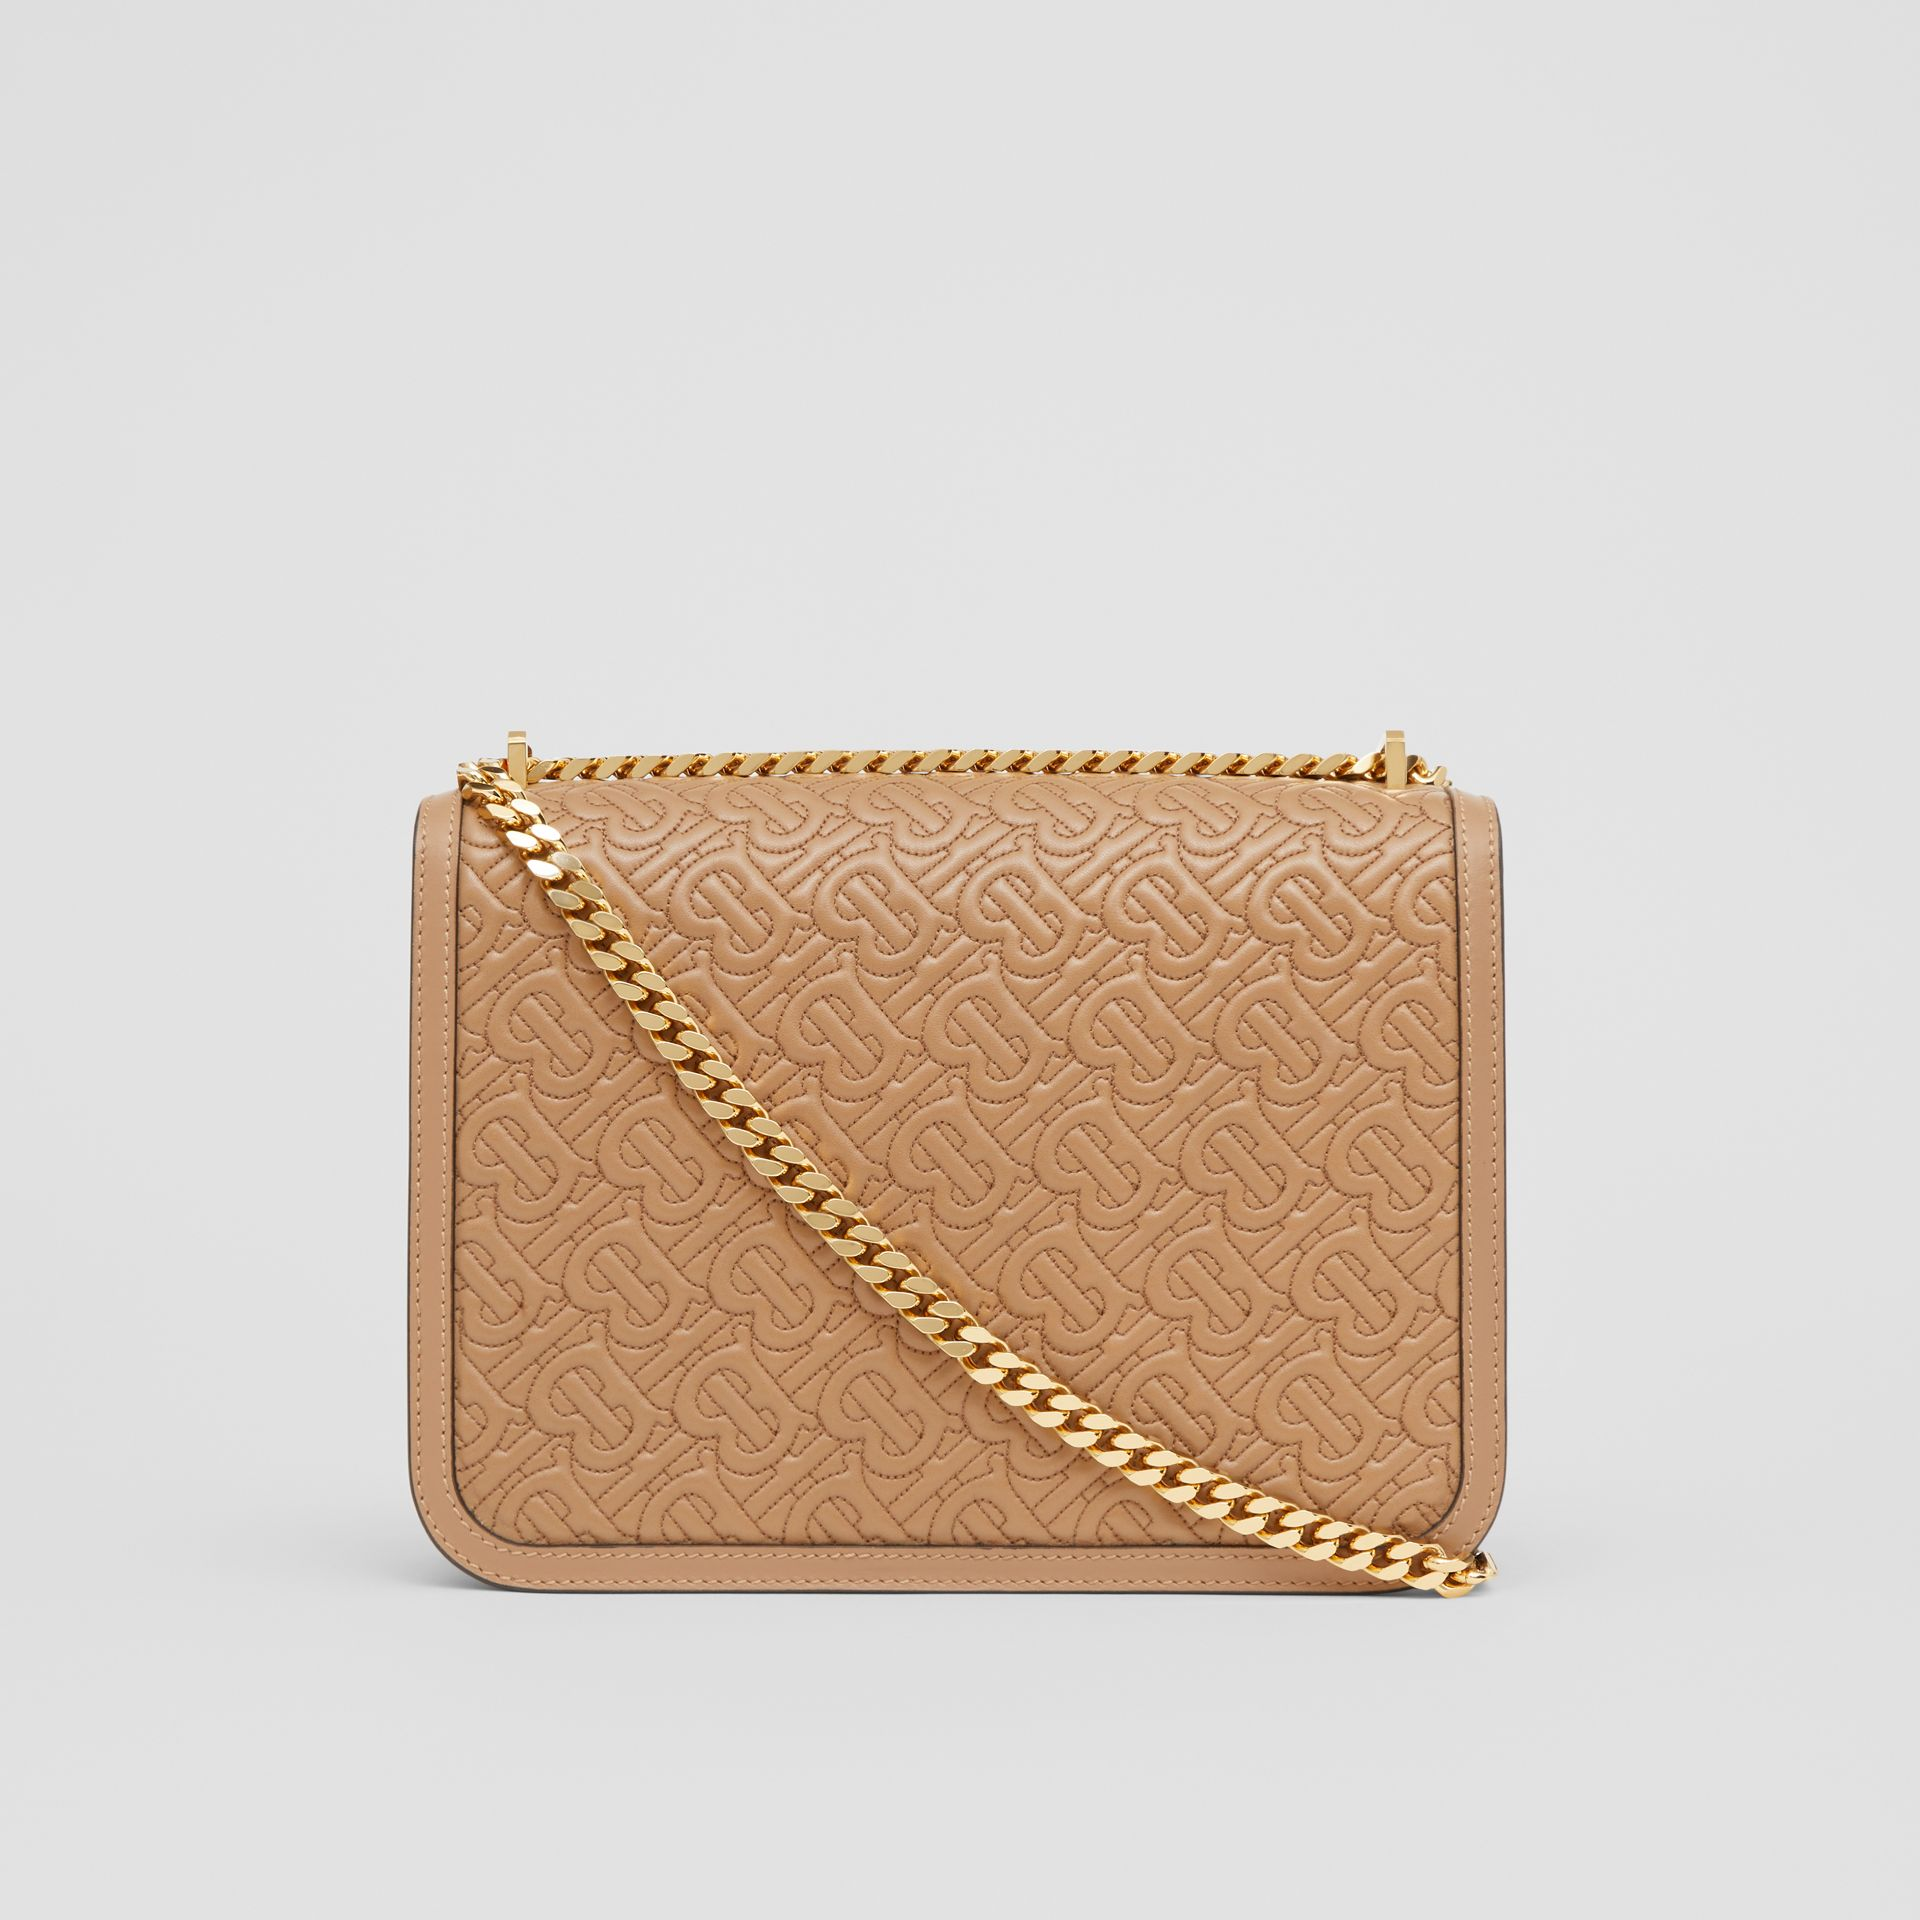 Medium Quilted Monogram Lambskin TB Bag in Honey - Women | Burberry - gallery image 7